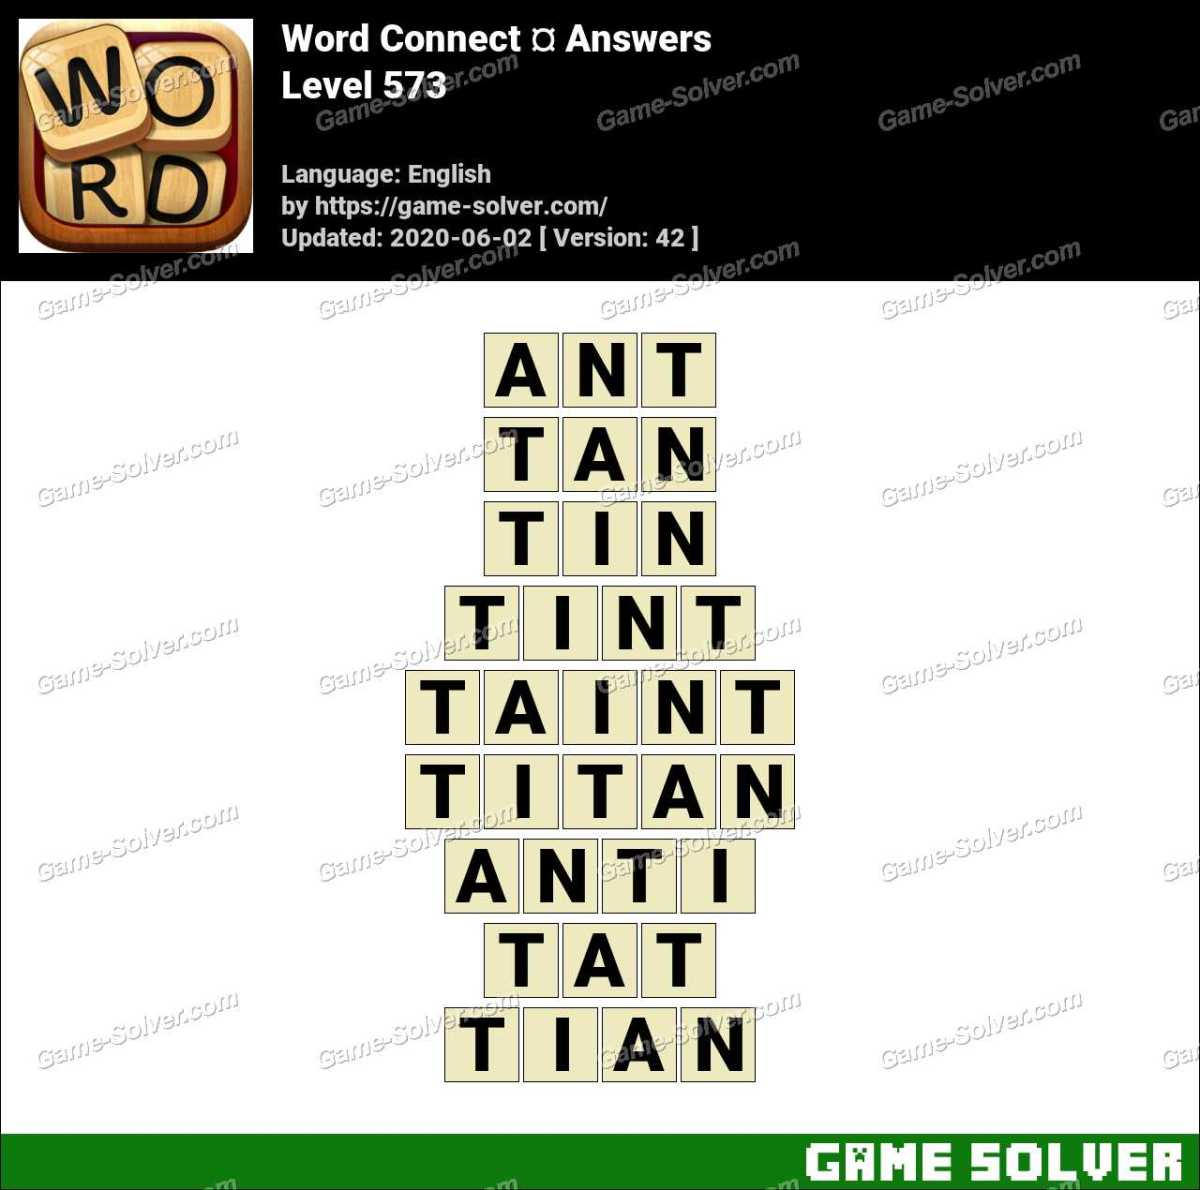 Word Connect Level 573 Answers